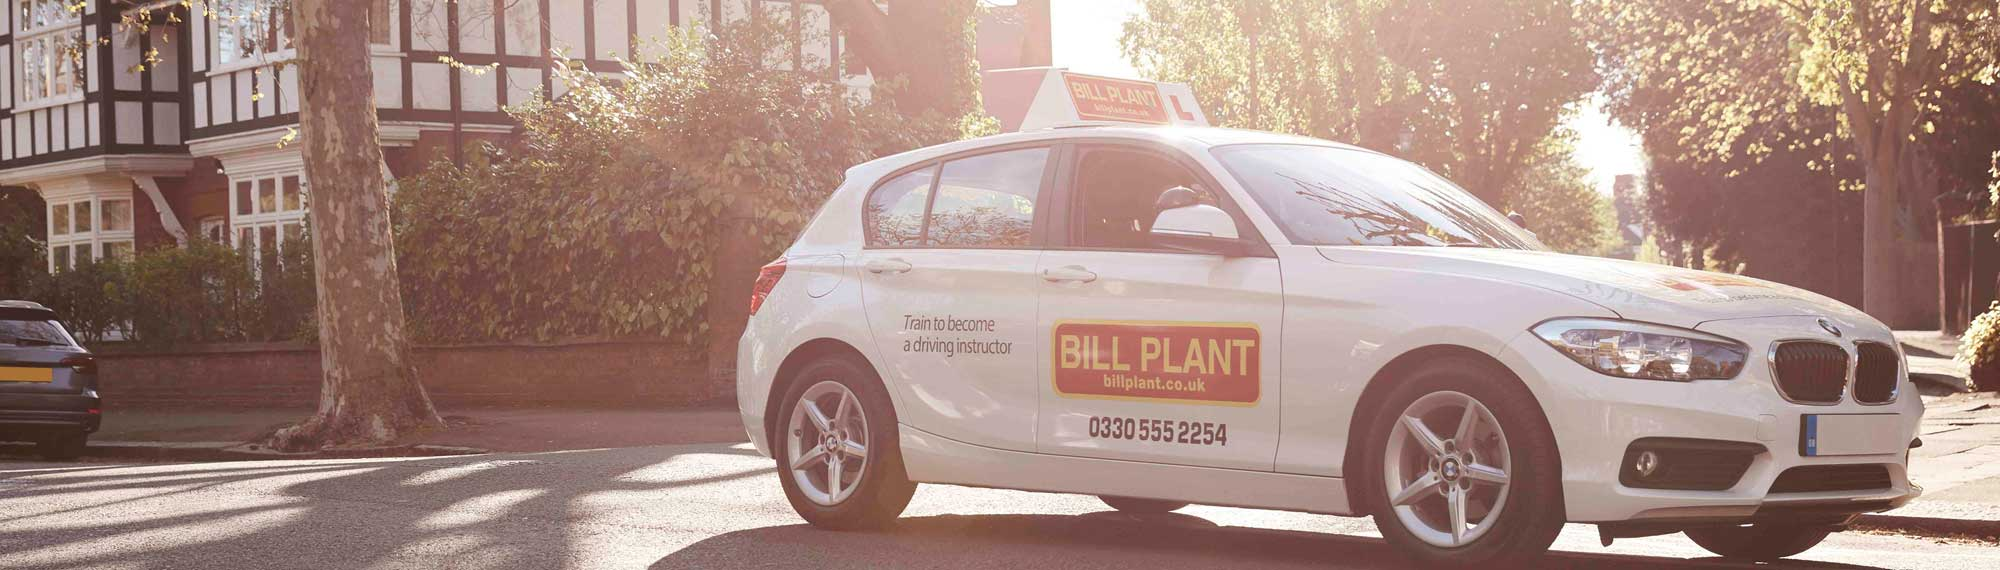 Bill Plant Driving Lessons